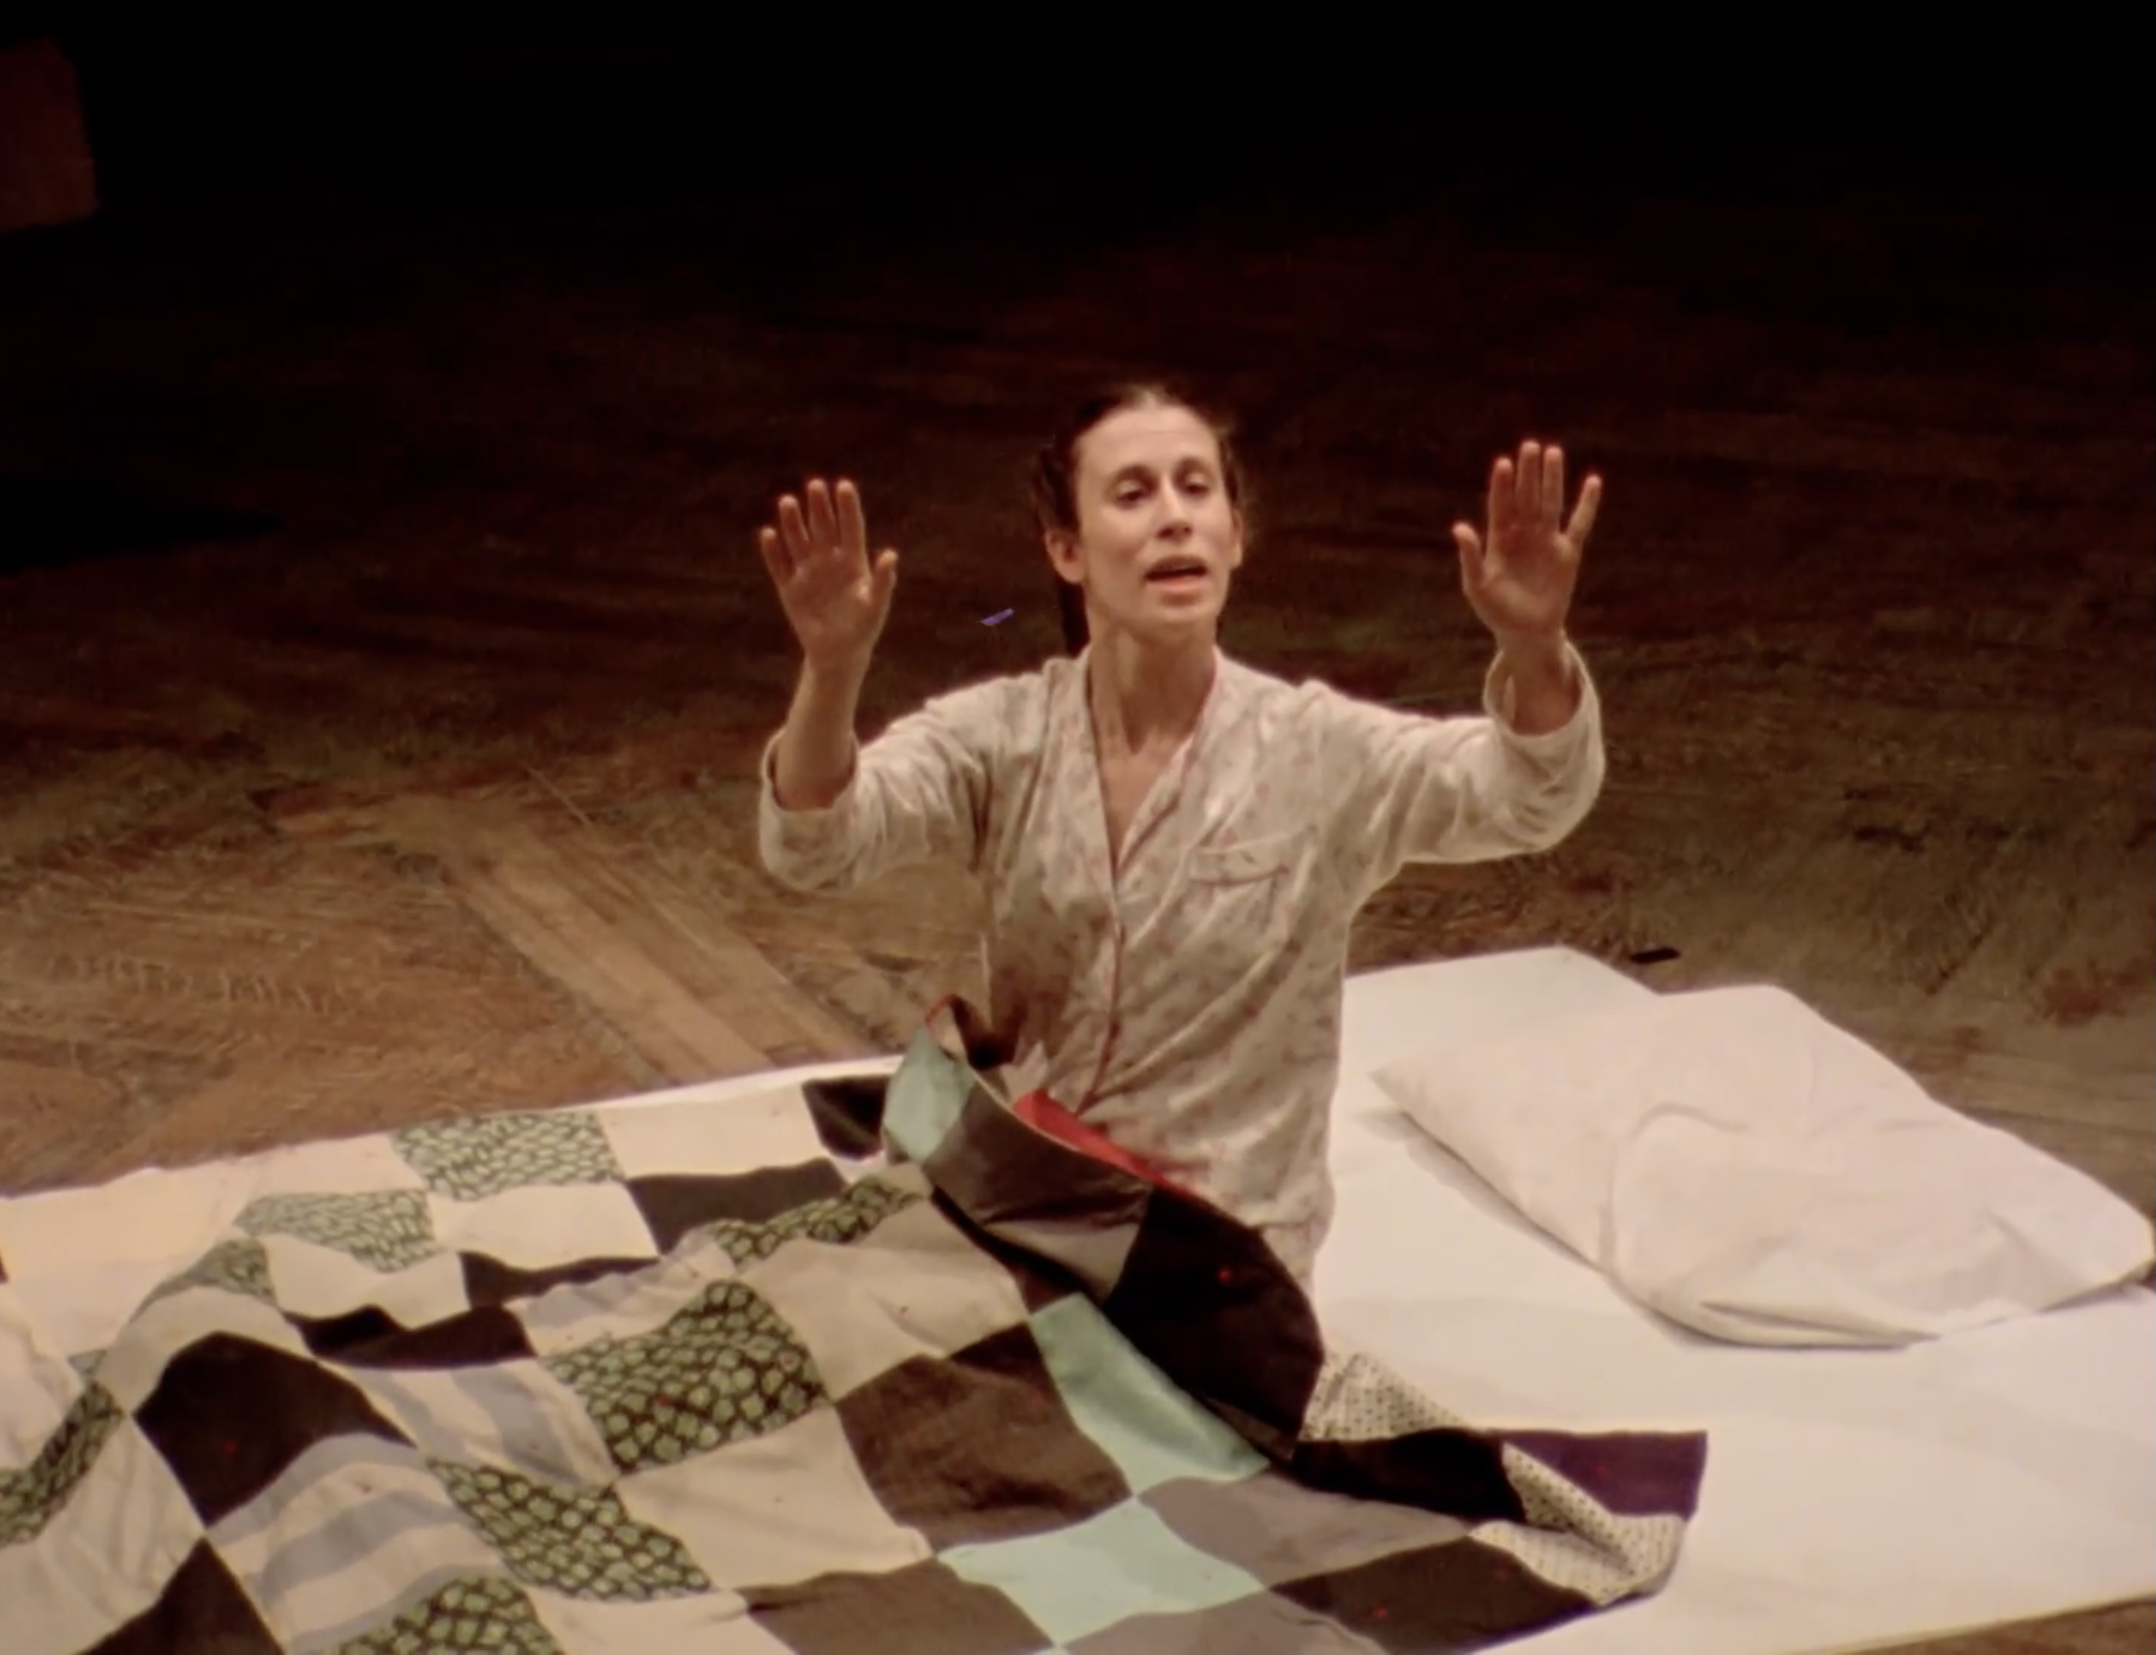 Quarry by Meredith Monk